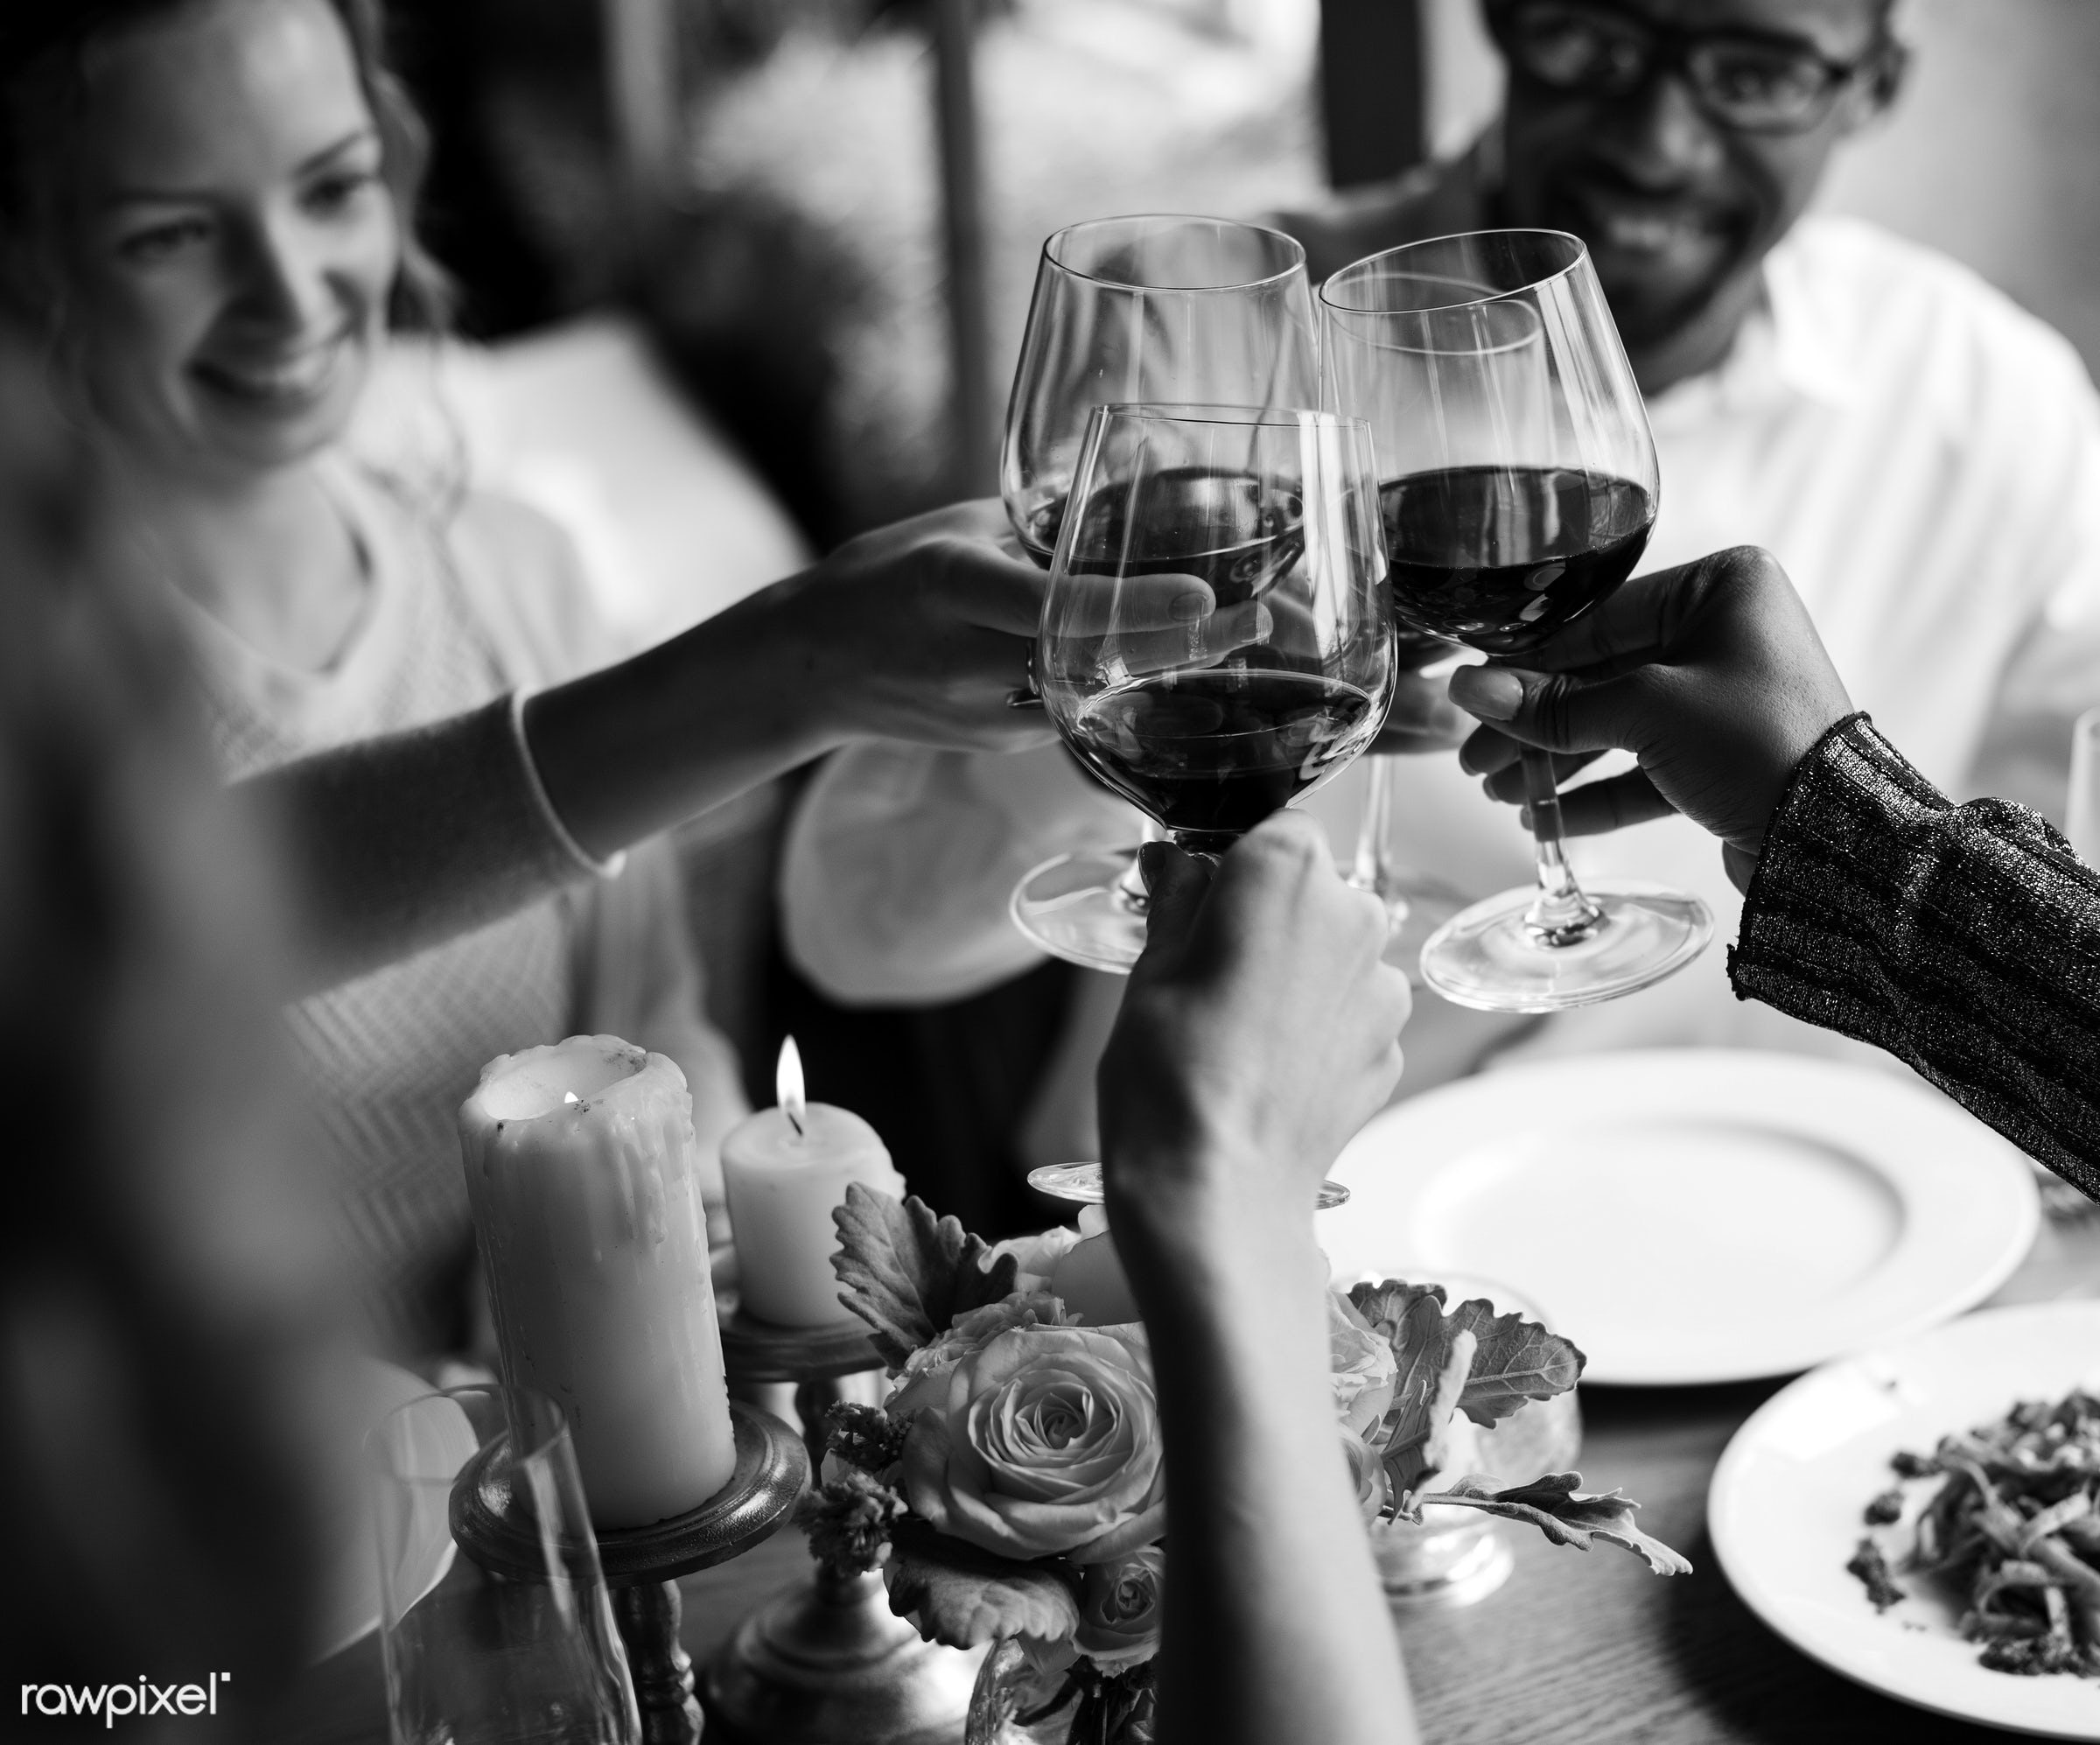 expression, person, cuisine, people, dished, together, caucasian, friends, woman, gather, drink, candles, friendship, lunch...